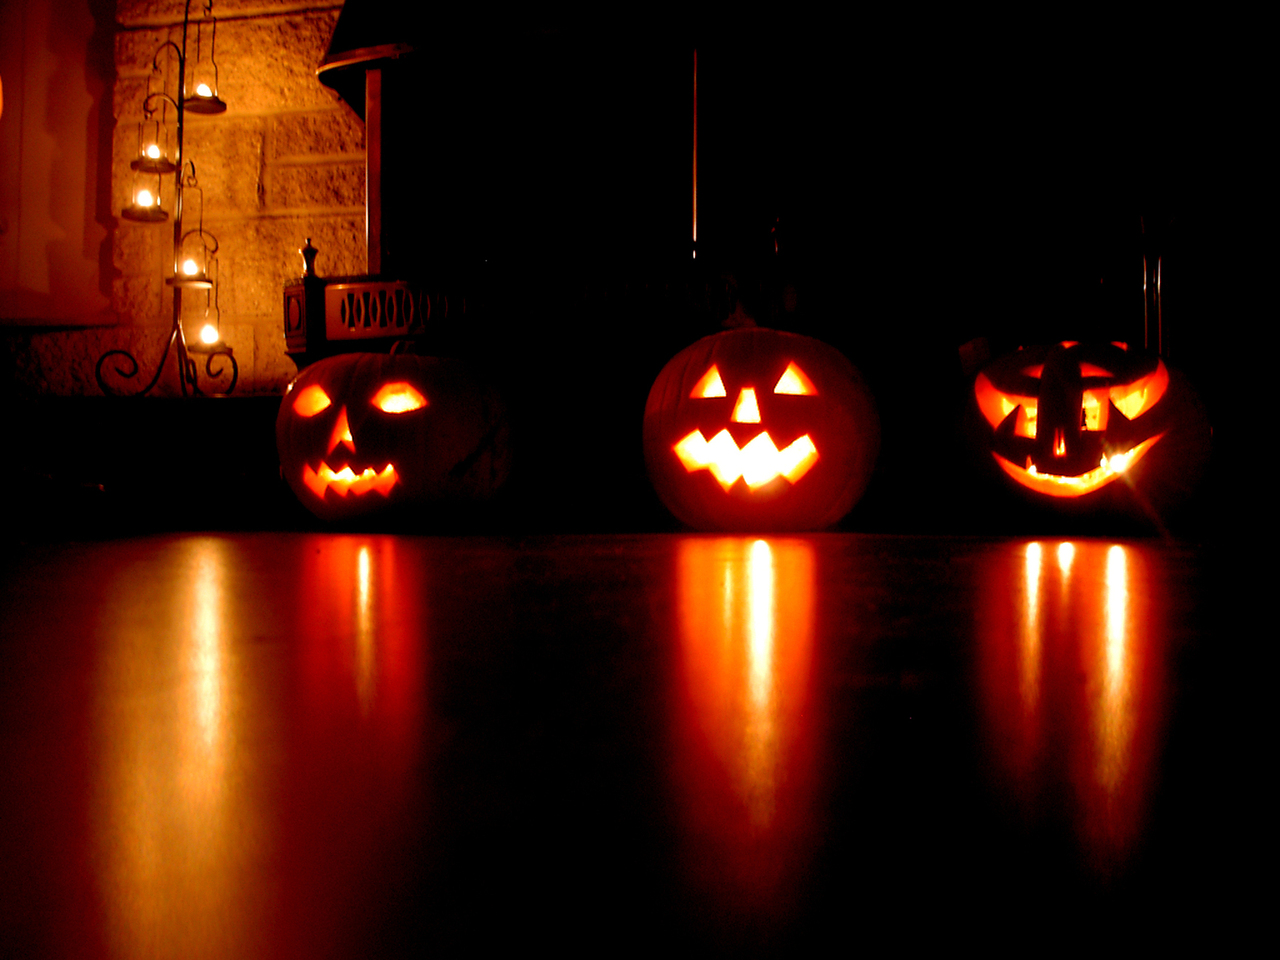 6 mystical halloween lighting ideas 12 - Halloween Light Ideas